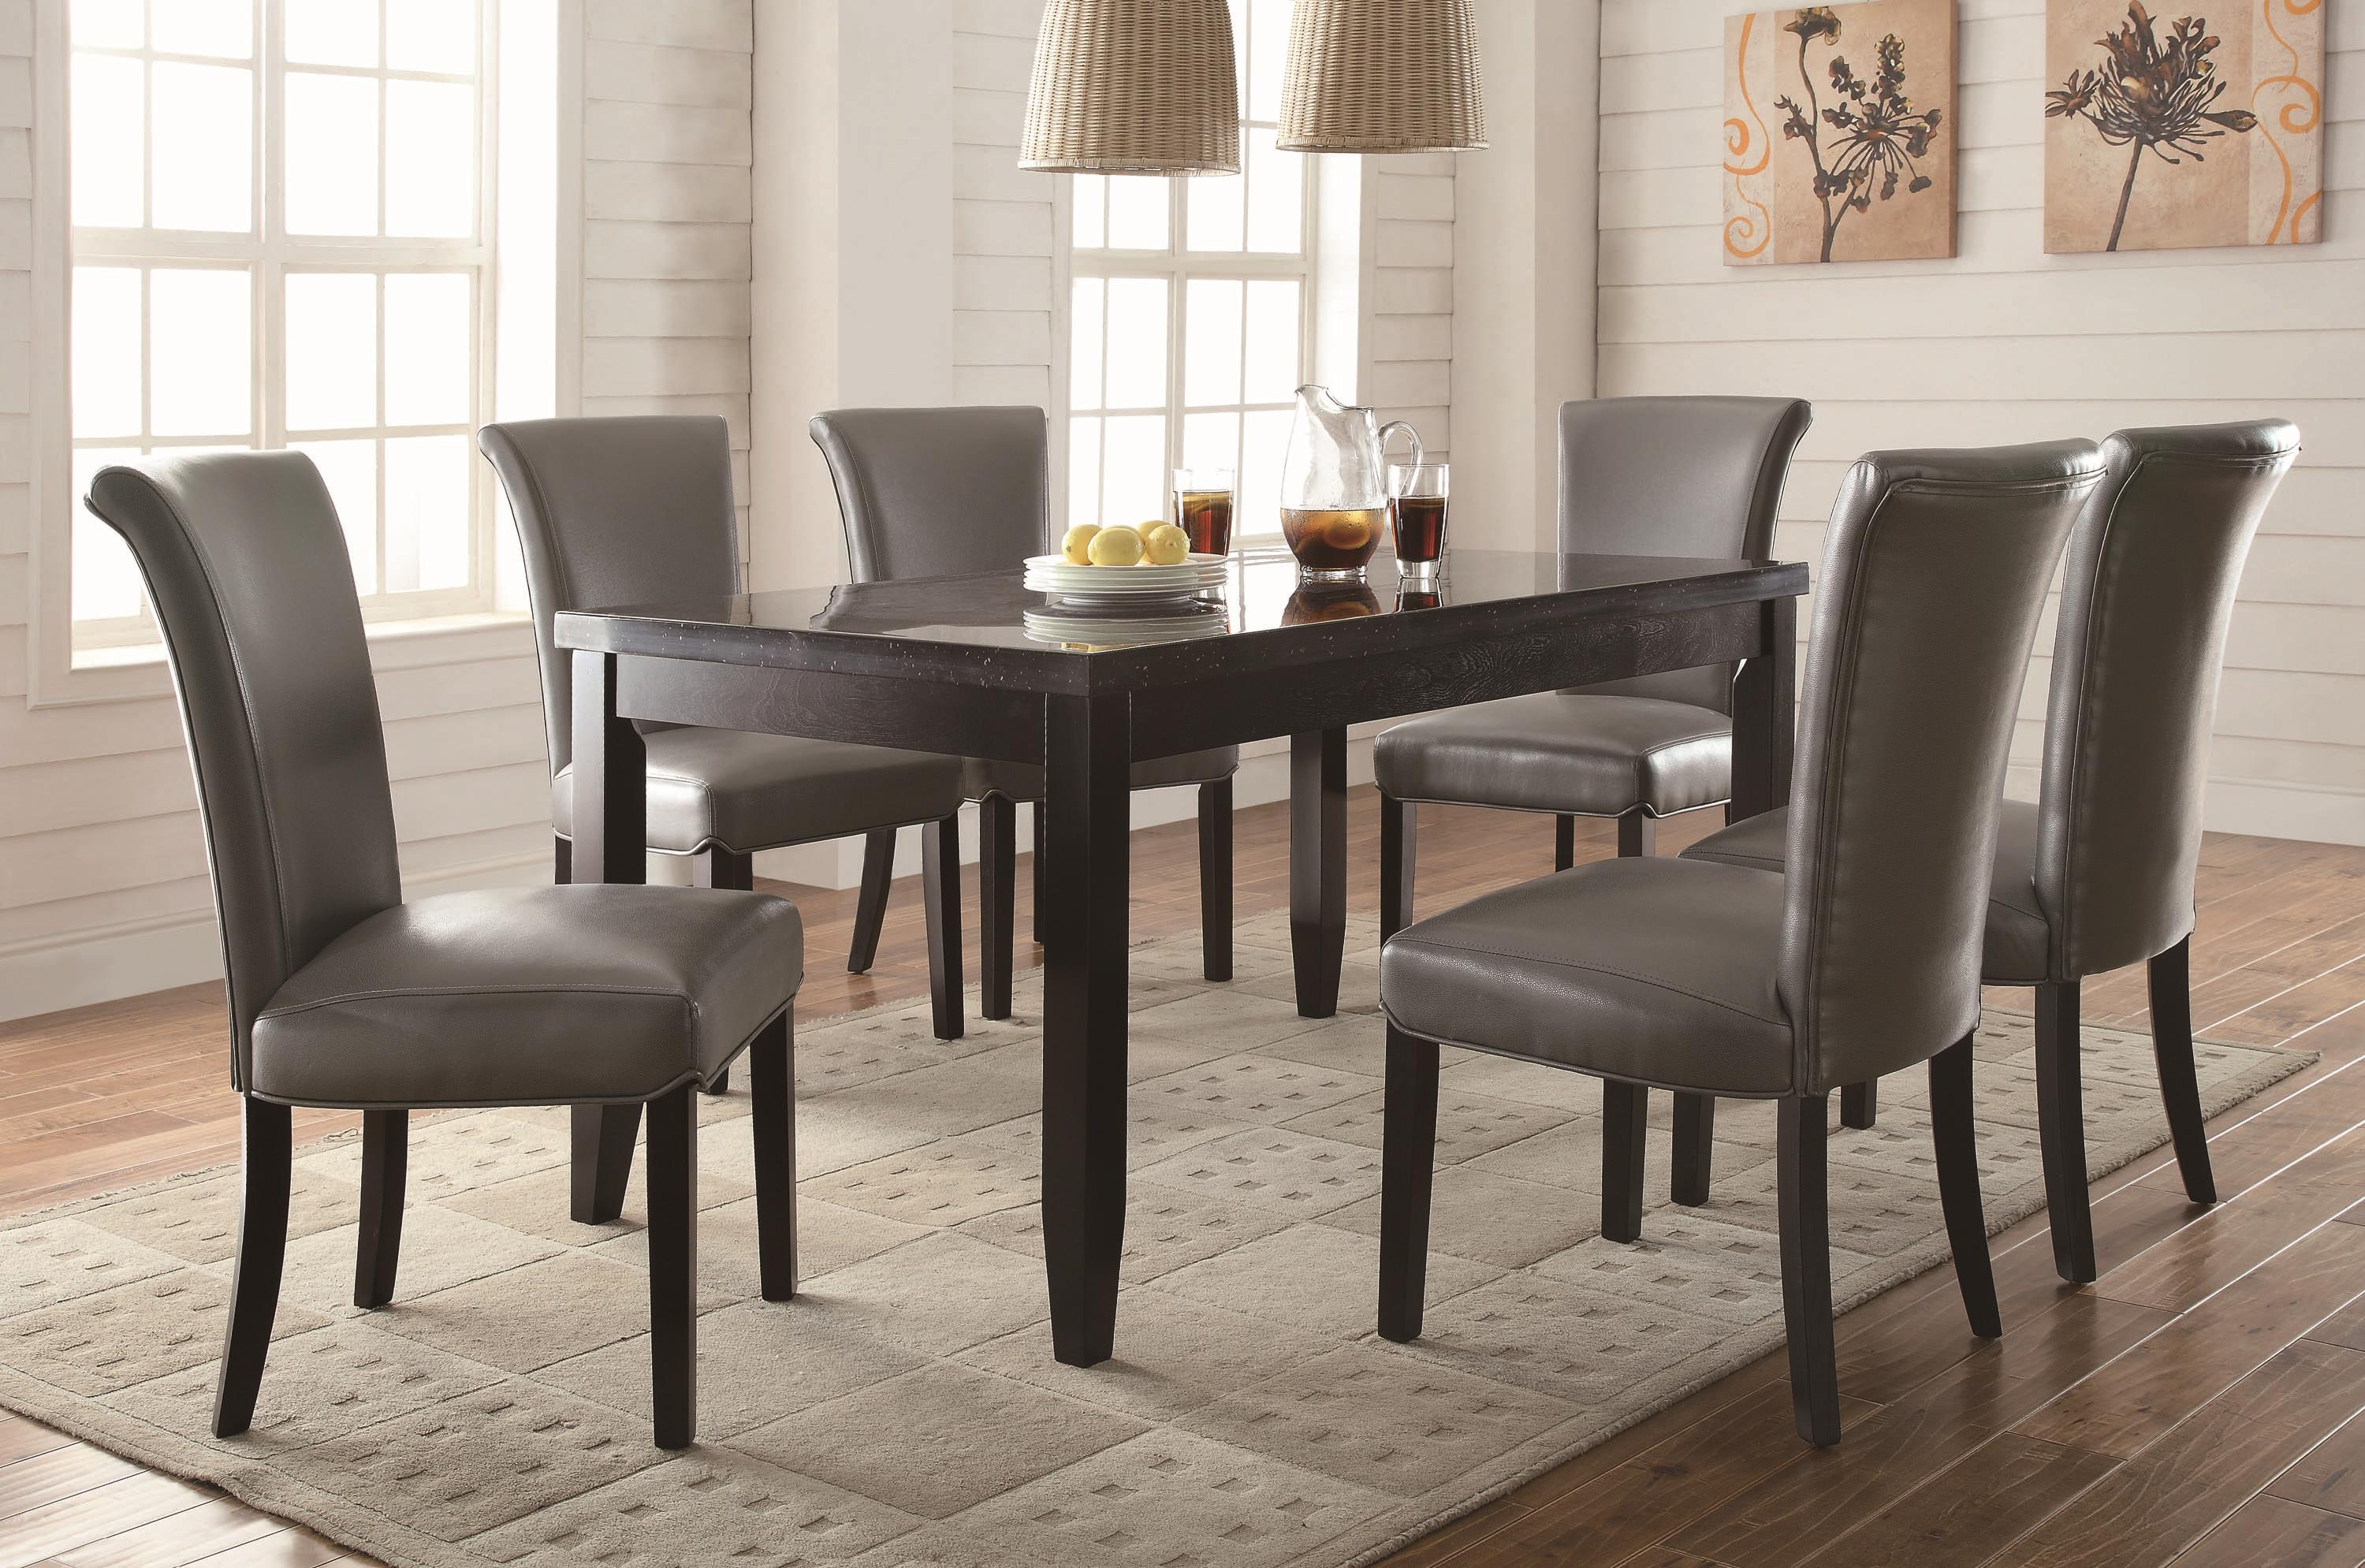 Coaster Newbridge 7 Piece Dining Table U0026 Chair Set | Michaelu0027s Furniture  Warehouse | Dining 7 (or More) Piece Sets